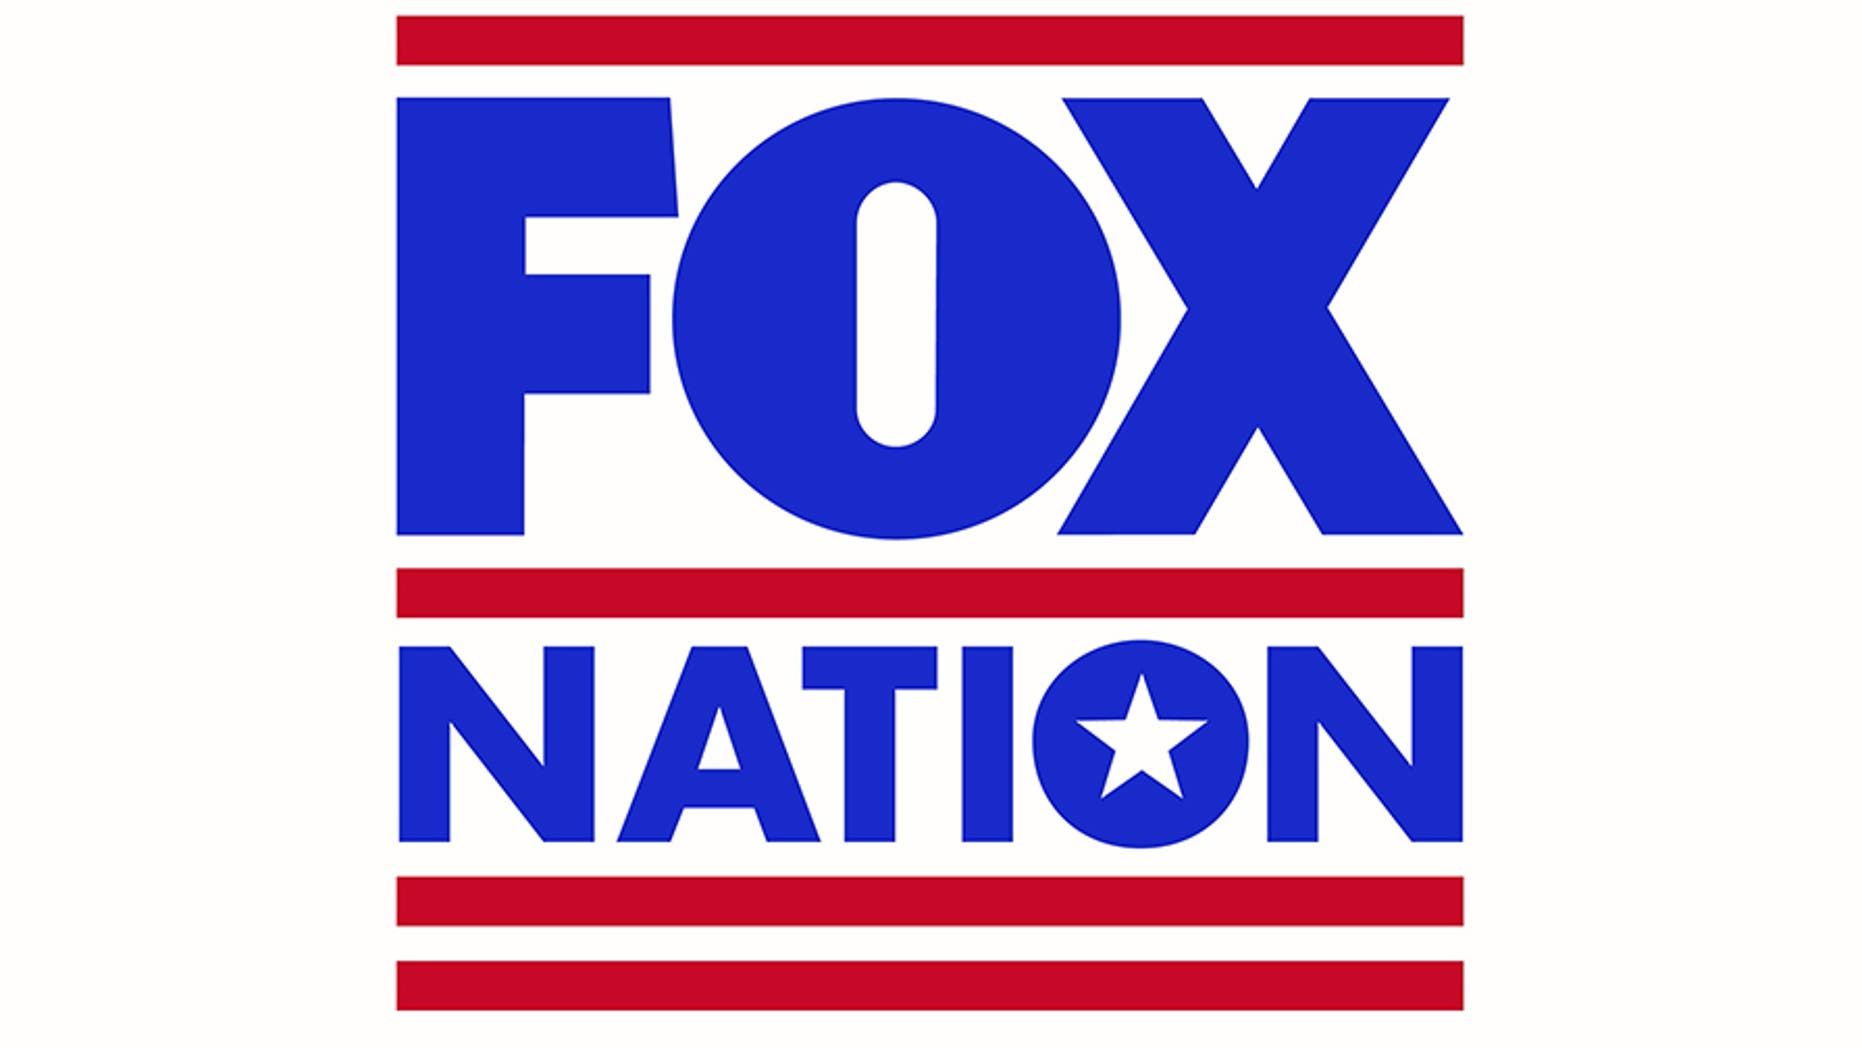 Fox Nation will start hiring staffers in second quarter of 2018 and will be housed at Fox News headquarters in New York.